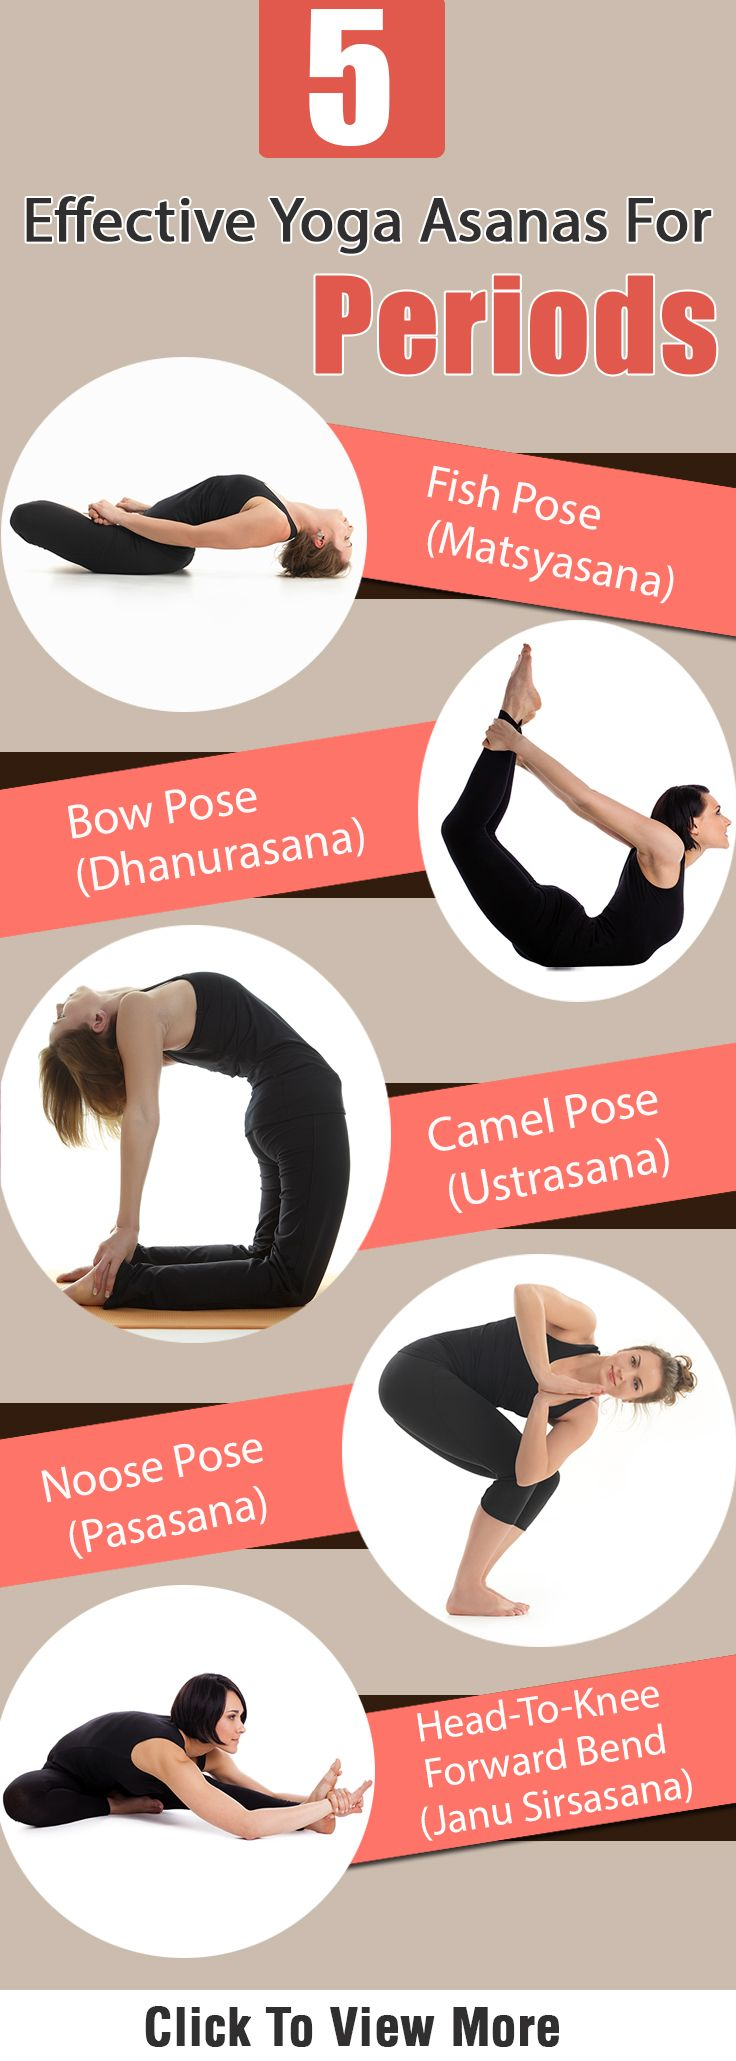 5 Effective Yoga Asanas For Periods : Let us take a look at how the age-old yoga asanas can help us with our